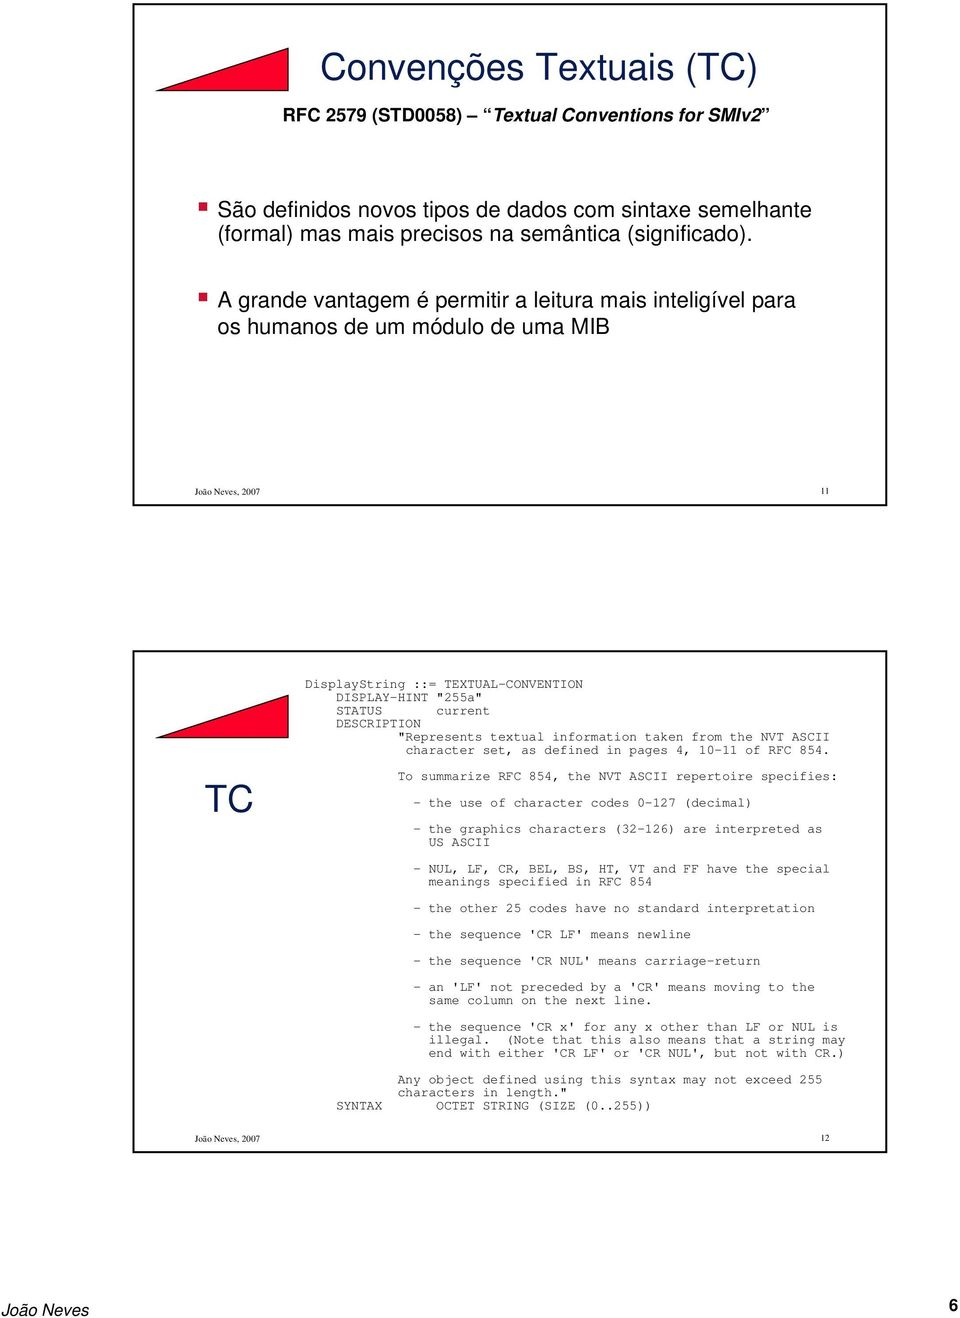 information taken from the NVT ASCII character set, as defined in pages 4, 10-11 of RFC 854.